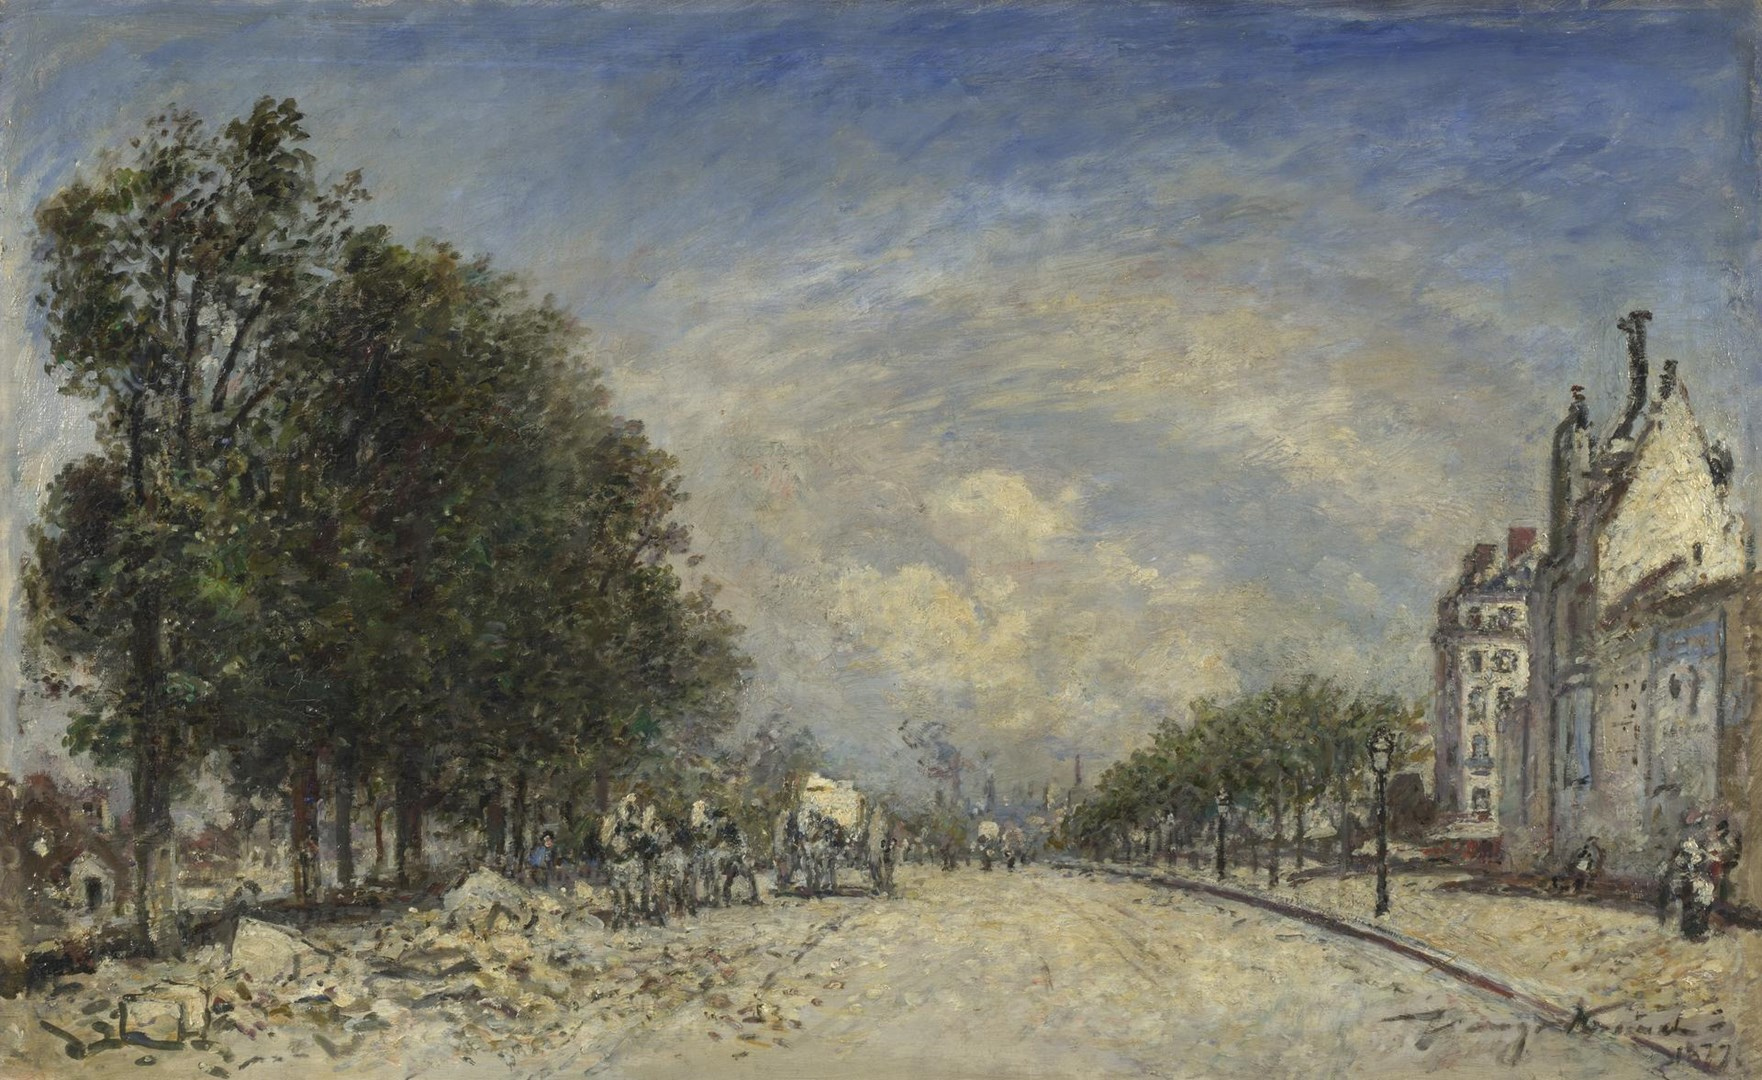 The Boulevard de Port-Royal, Paris by Johan Barthold Jongkind